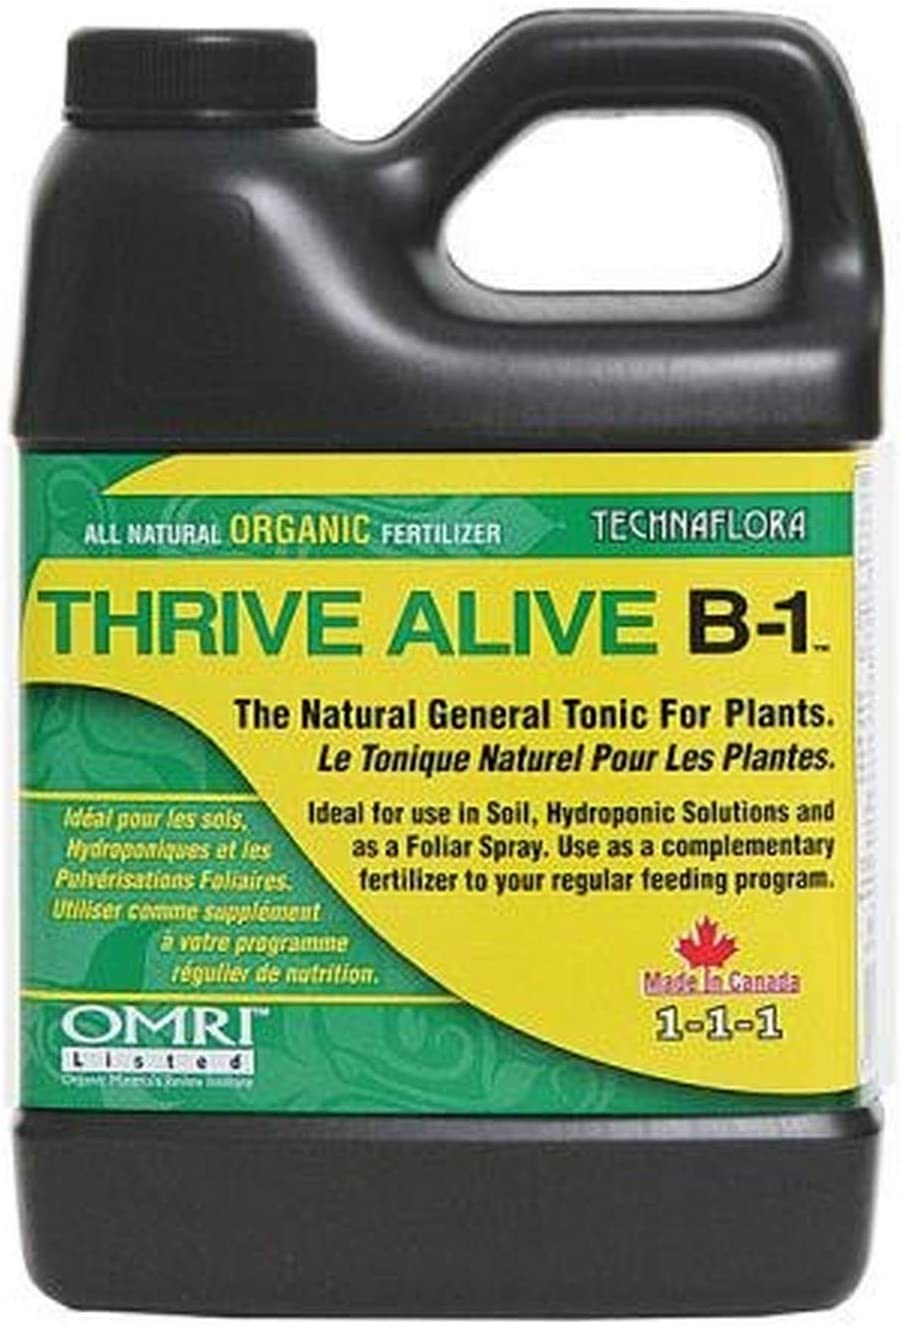 THRIVE ALIVE B-1 GREEN Ranking integrated 1st place Organic 35% OFF Tonic 500ml Based Plant Seaweed